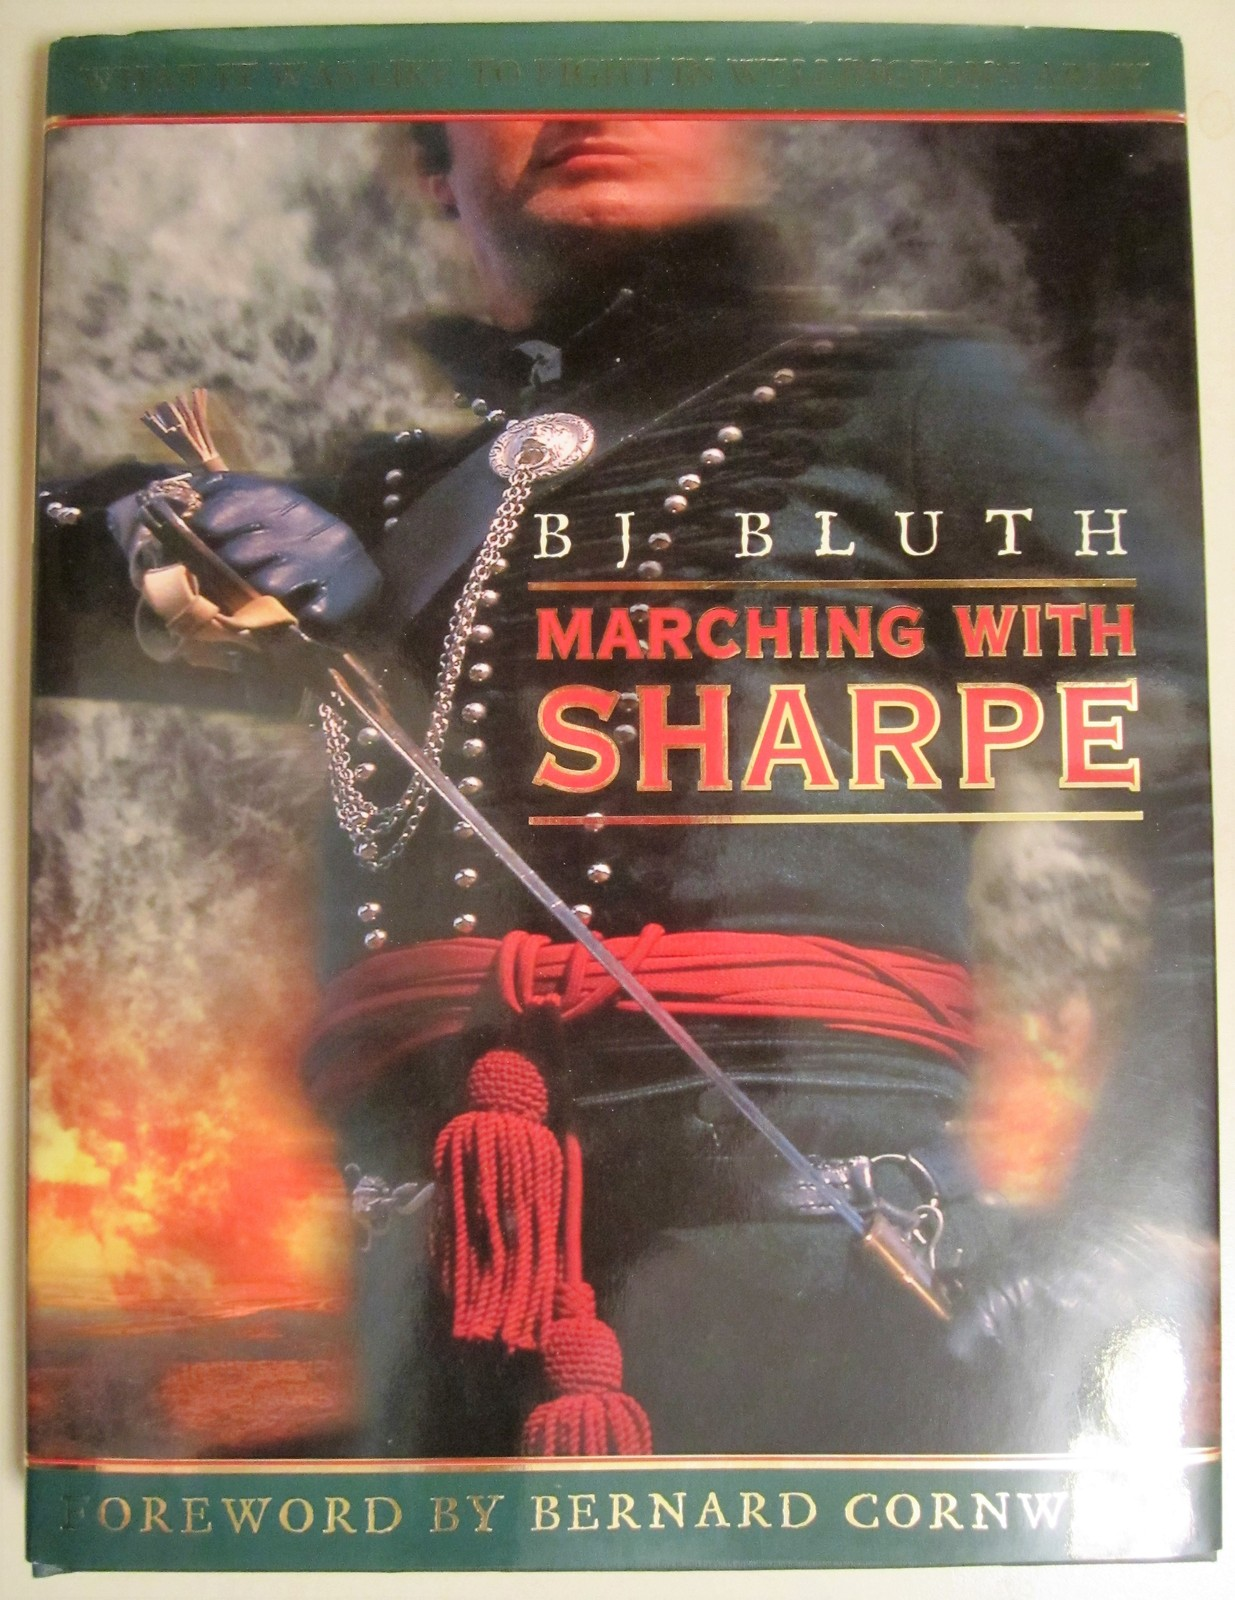 Marching with Sharpe - B.J. Bluth - Hardcover